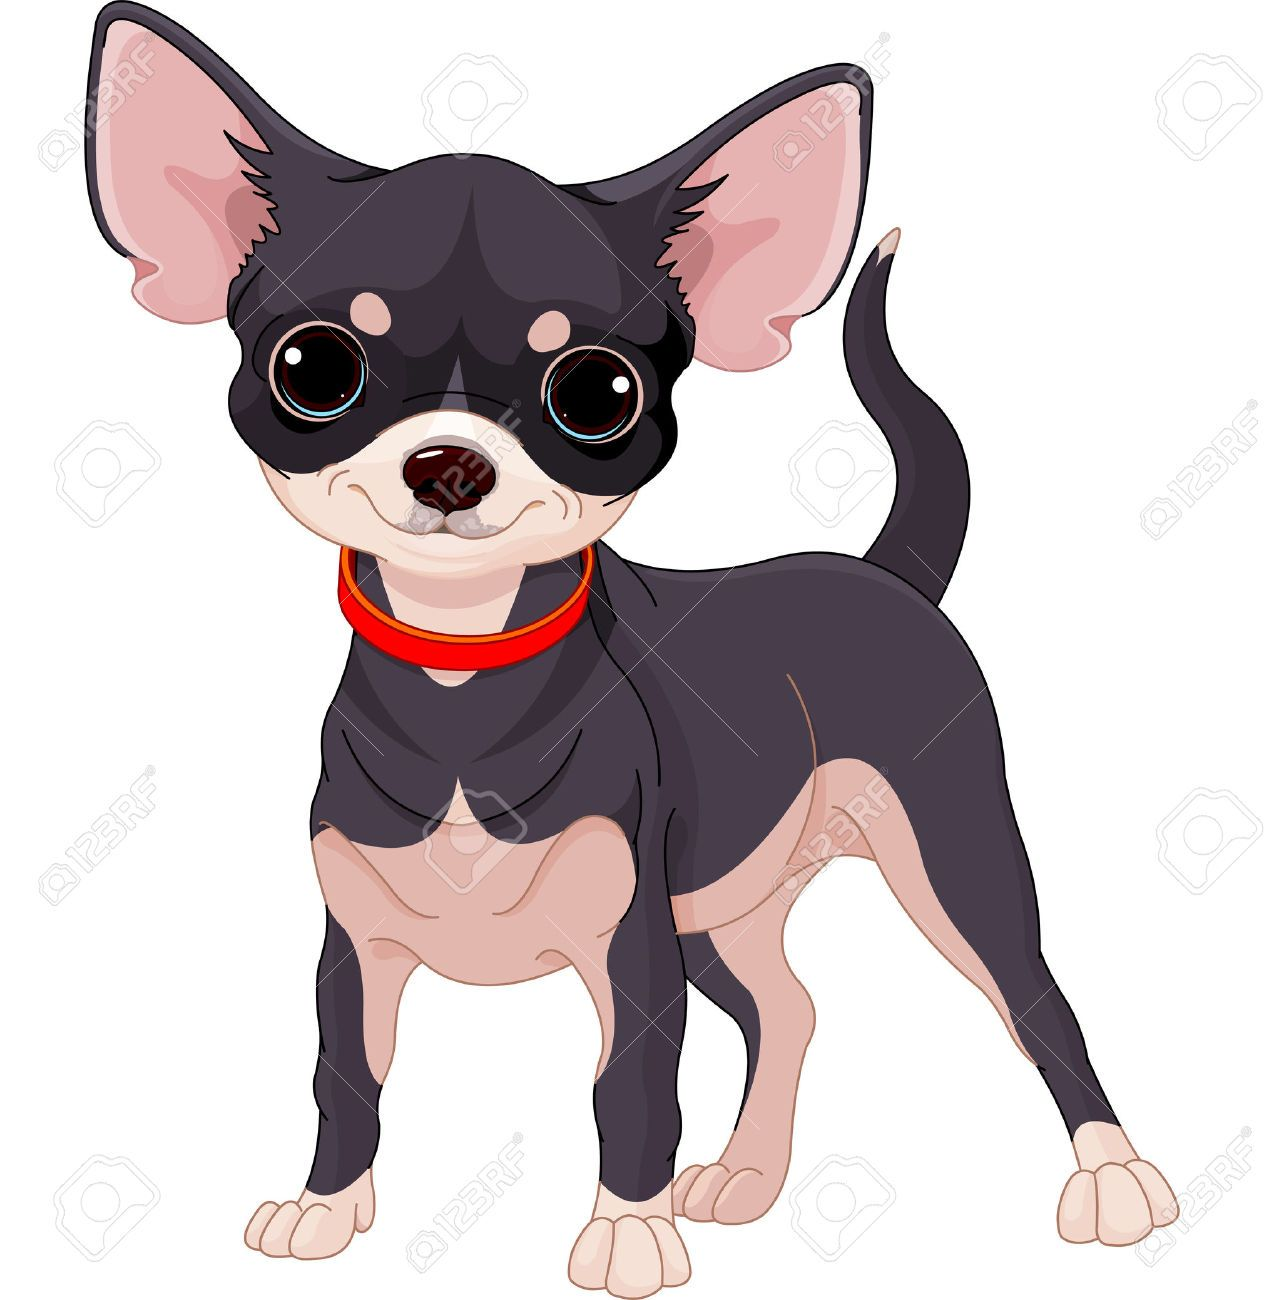 Cartoon Chihuahua Stock Photos, Pictures, Royalty Free Cartoon.